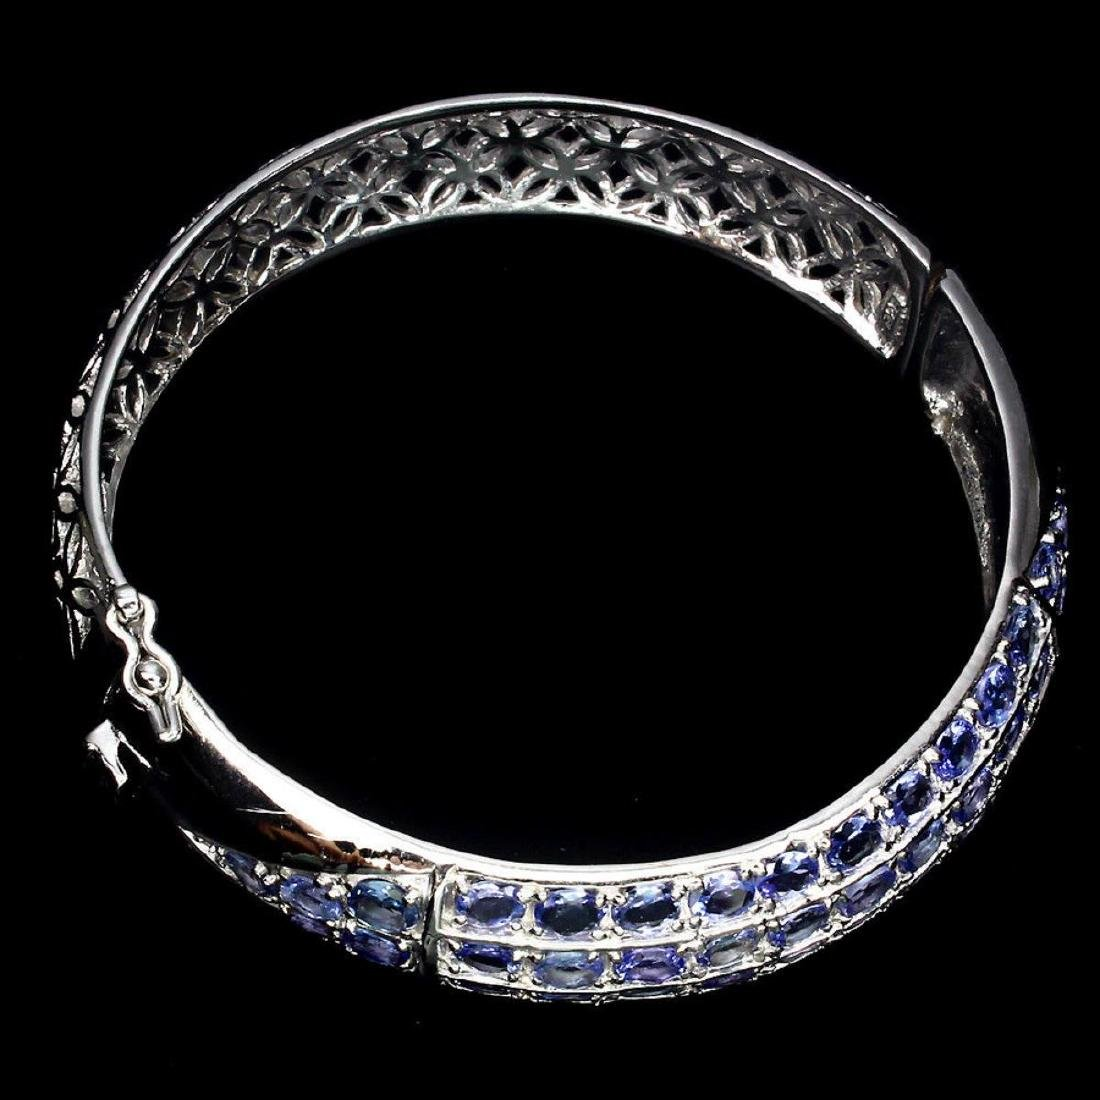 Natural Blue Violet Tanzanite 166.89 Cts Bangle - 3